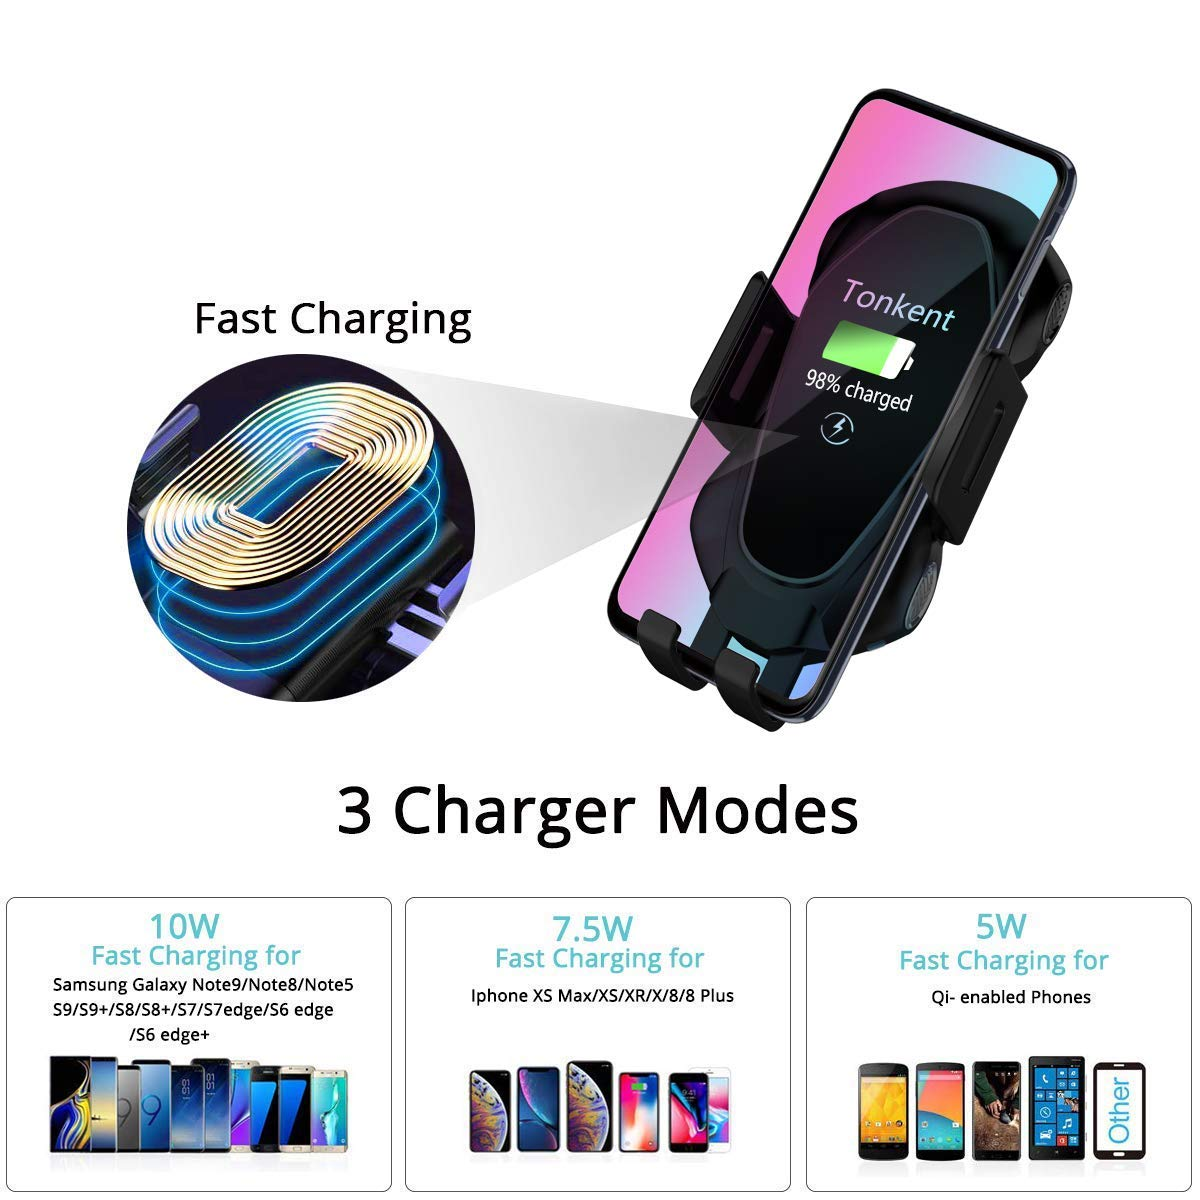 10W Compatible for Samsung Galaxy S9//S9+//S8//S8+//Note 8 Tonkent Fast Car Wireless Charger Mount Air Vent Dashboard Phone Holder 7.5W Compatible for iPhone Xs Max//Xs//XR//X// 8//8 Plus